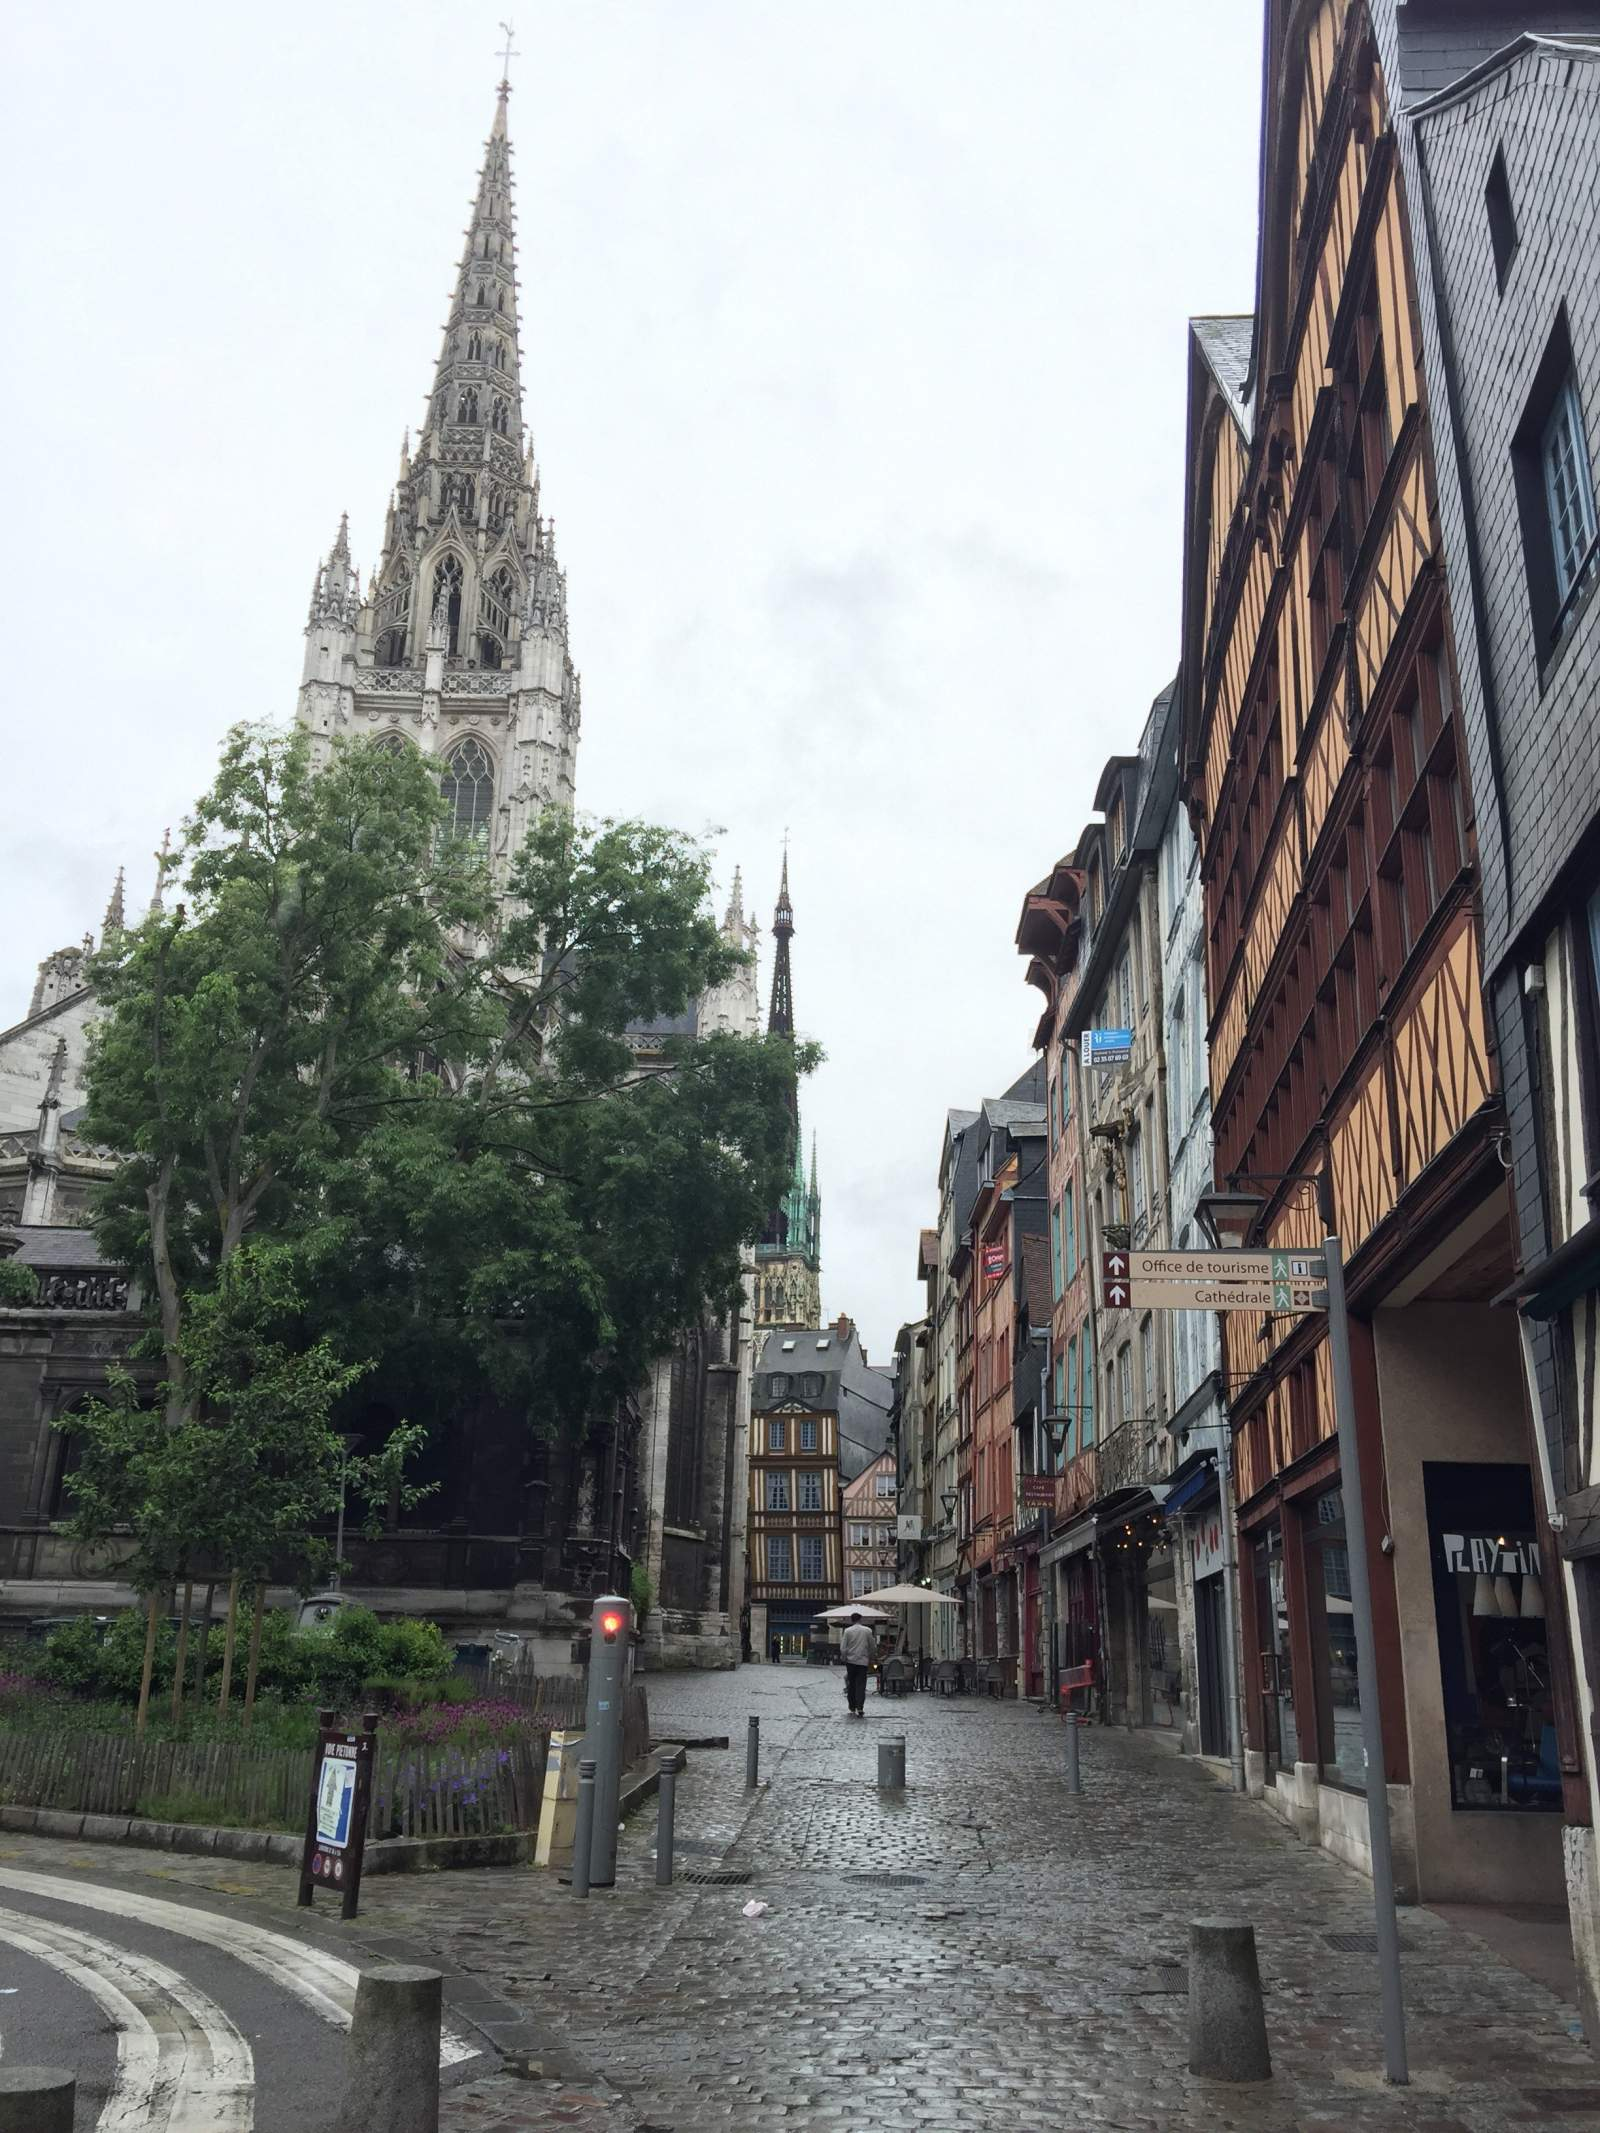 A day out in Rouen